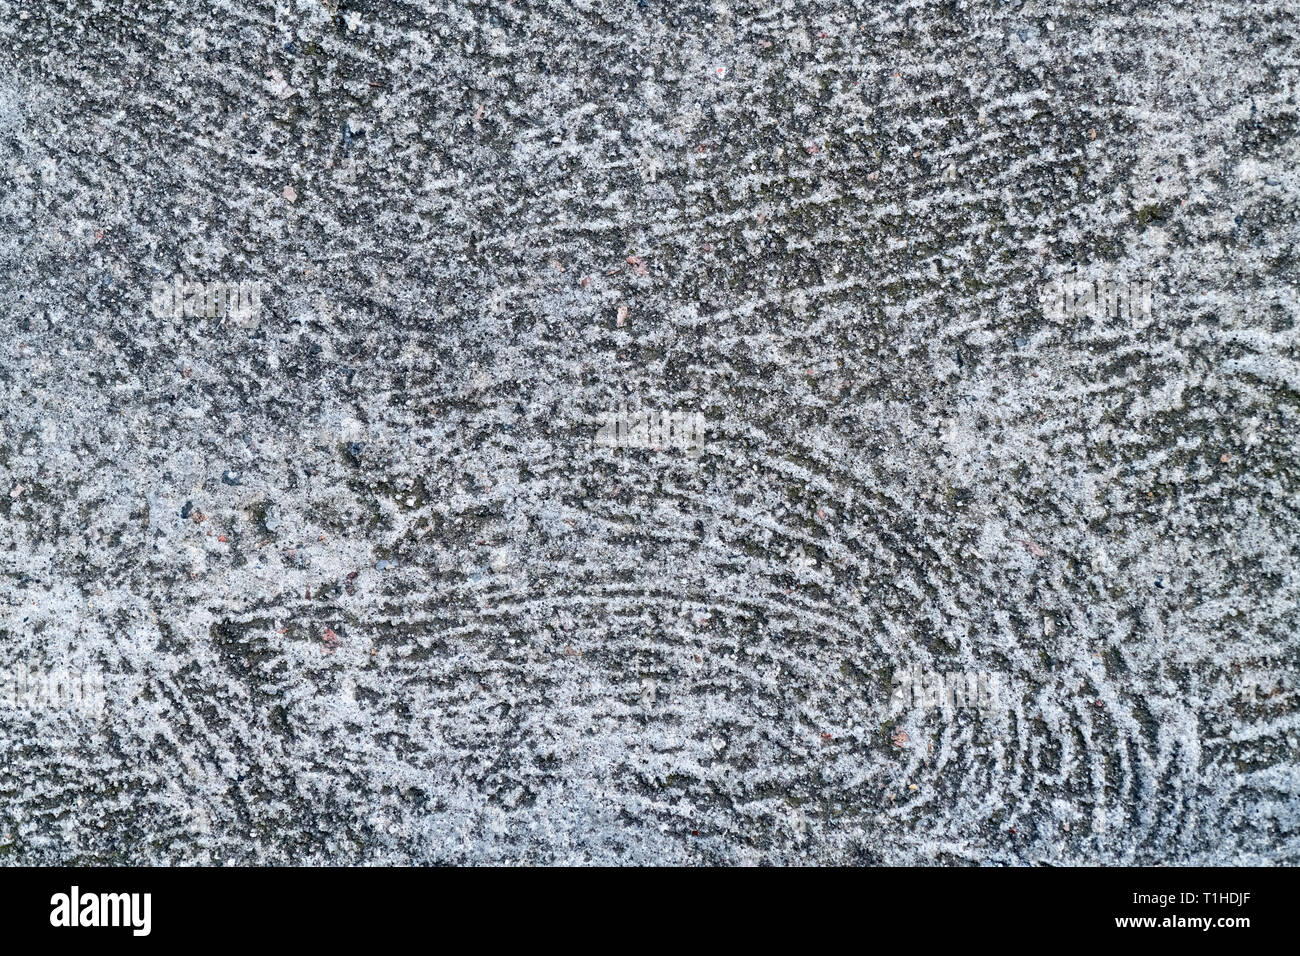 Swirly trowel marks in a cement surface. Concept rough surface, rough surface texture. - Stock Image